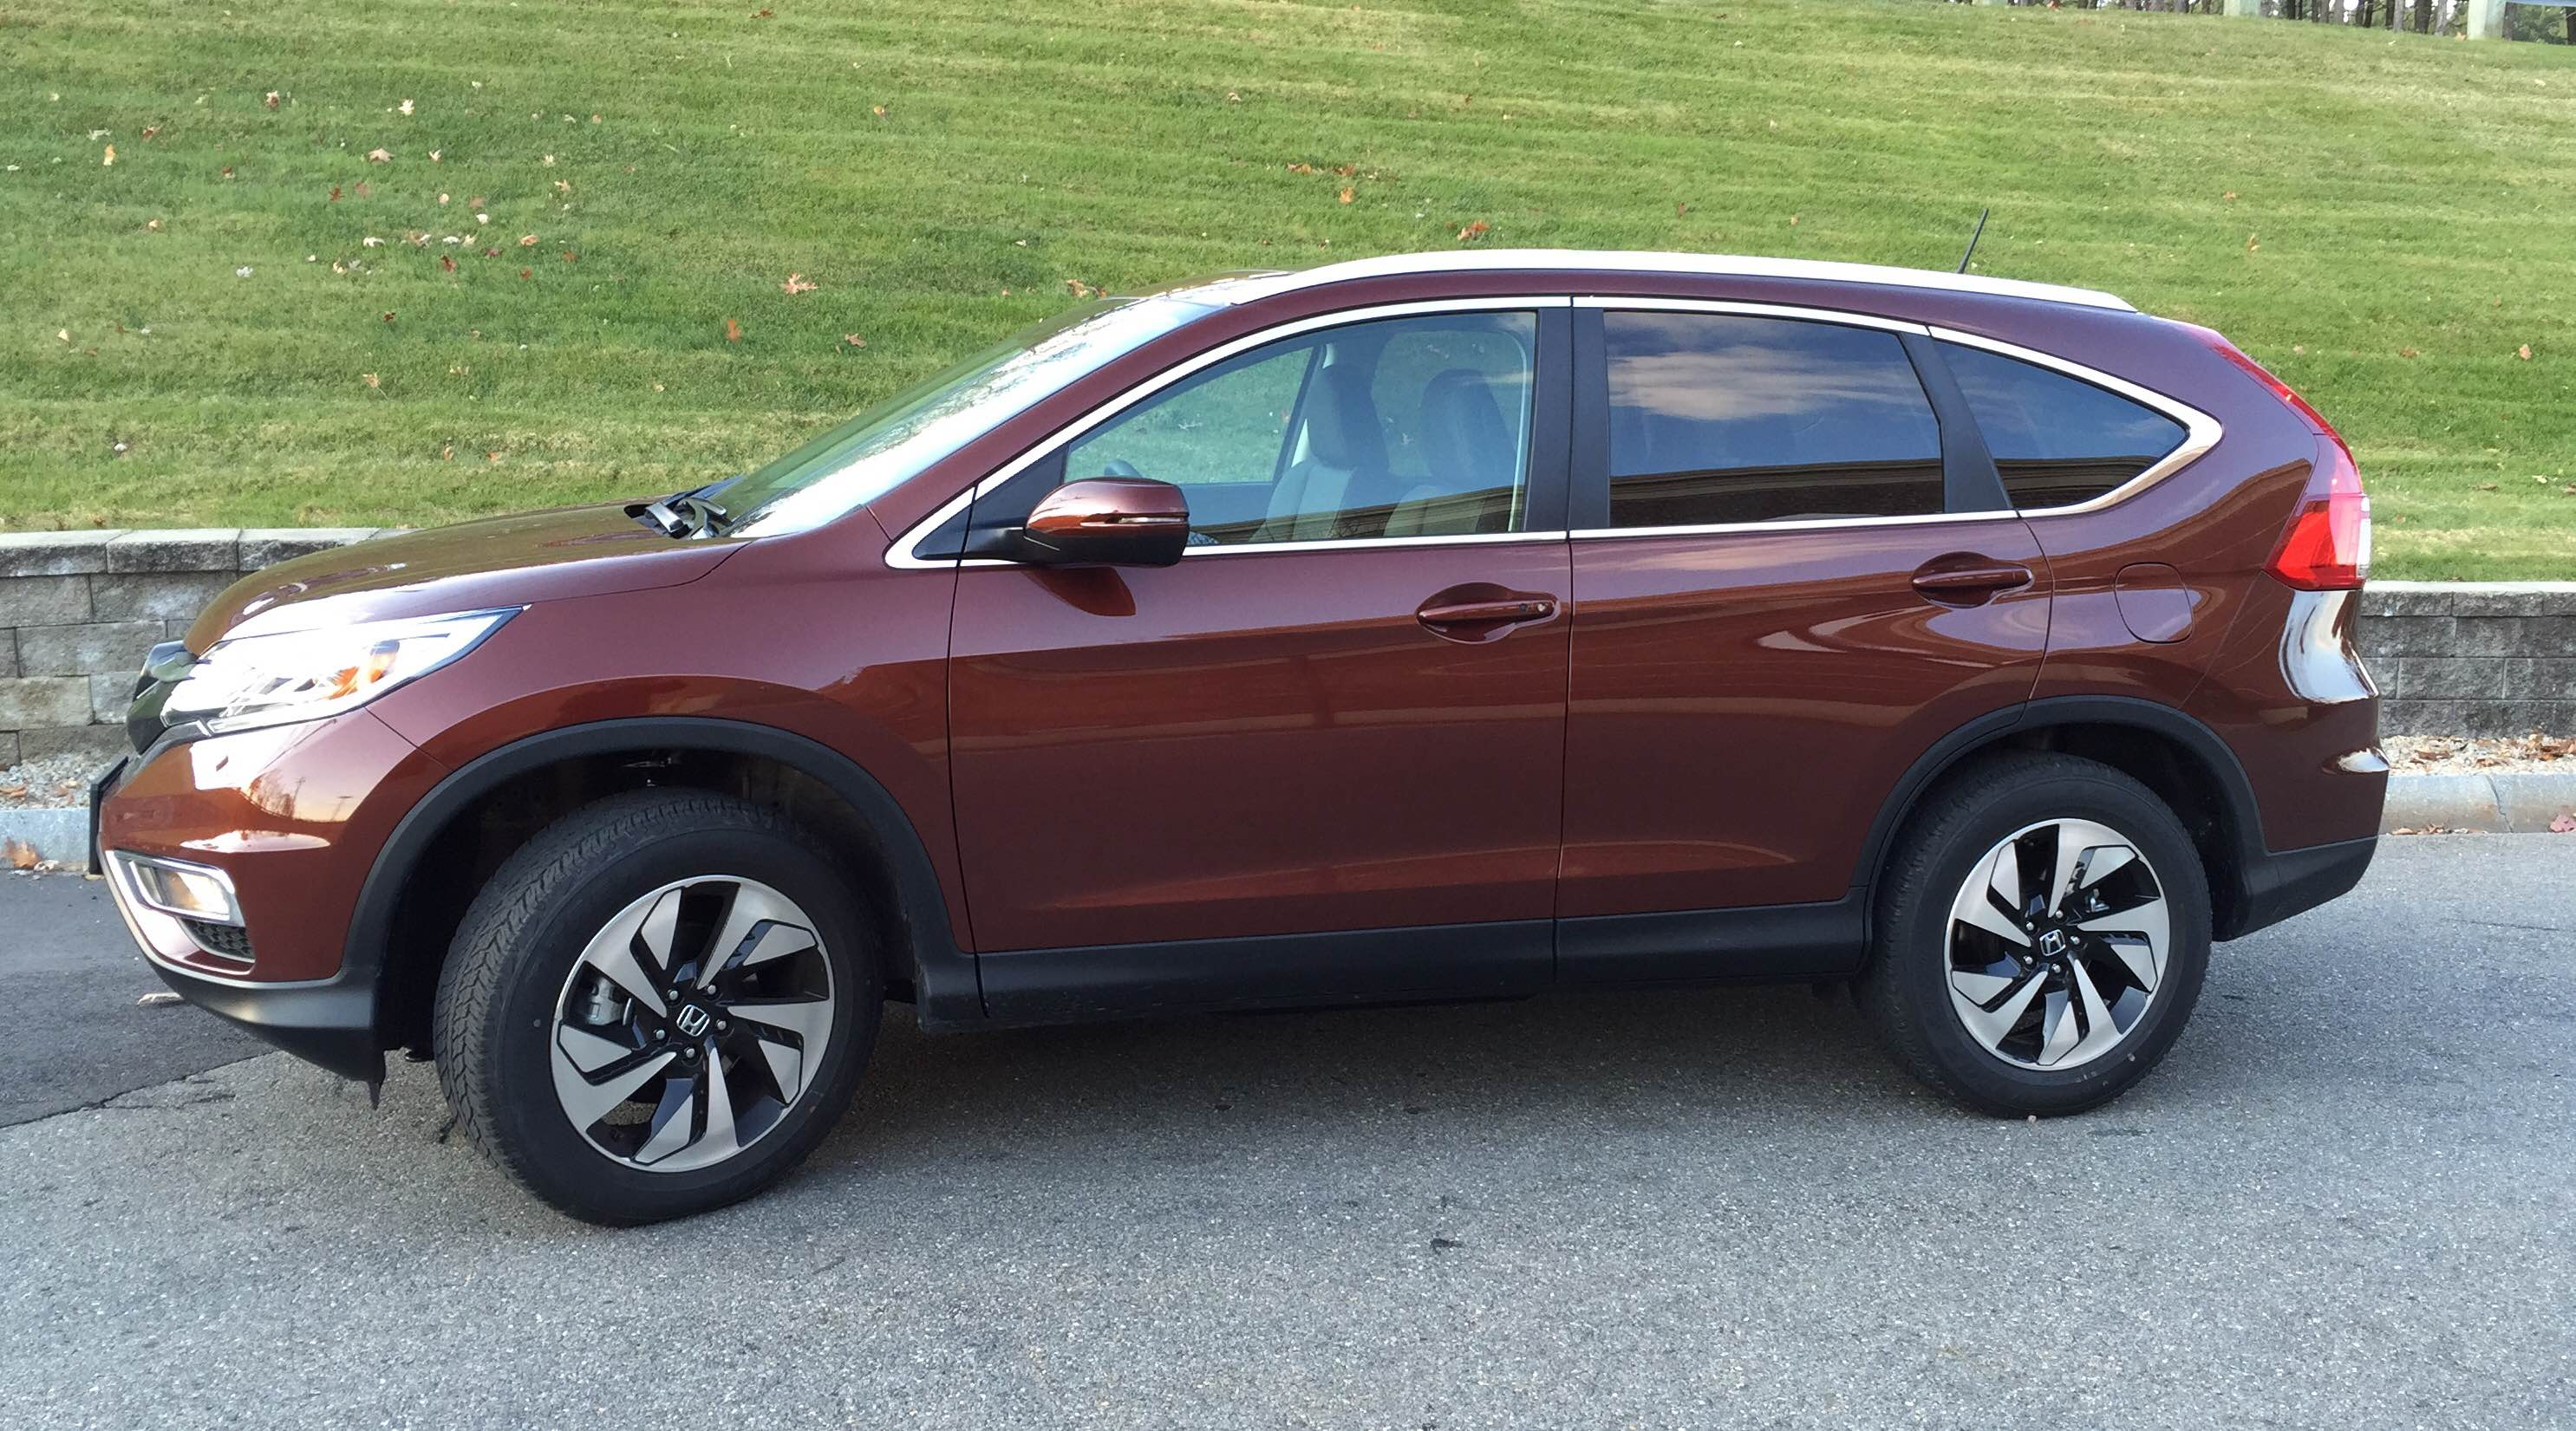 Honda Crv Used >> REVIEW: 2015 Honda CR-V Gets Updated Styling Inside and ...